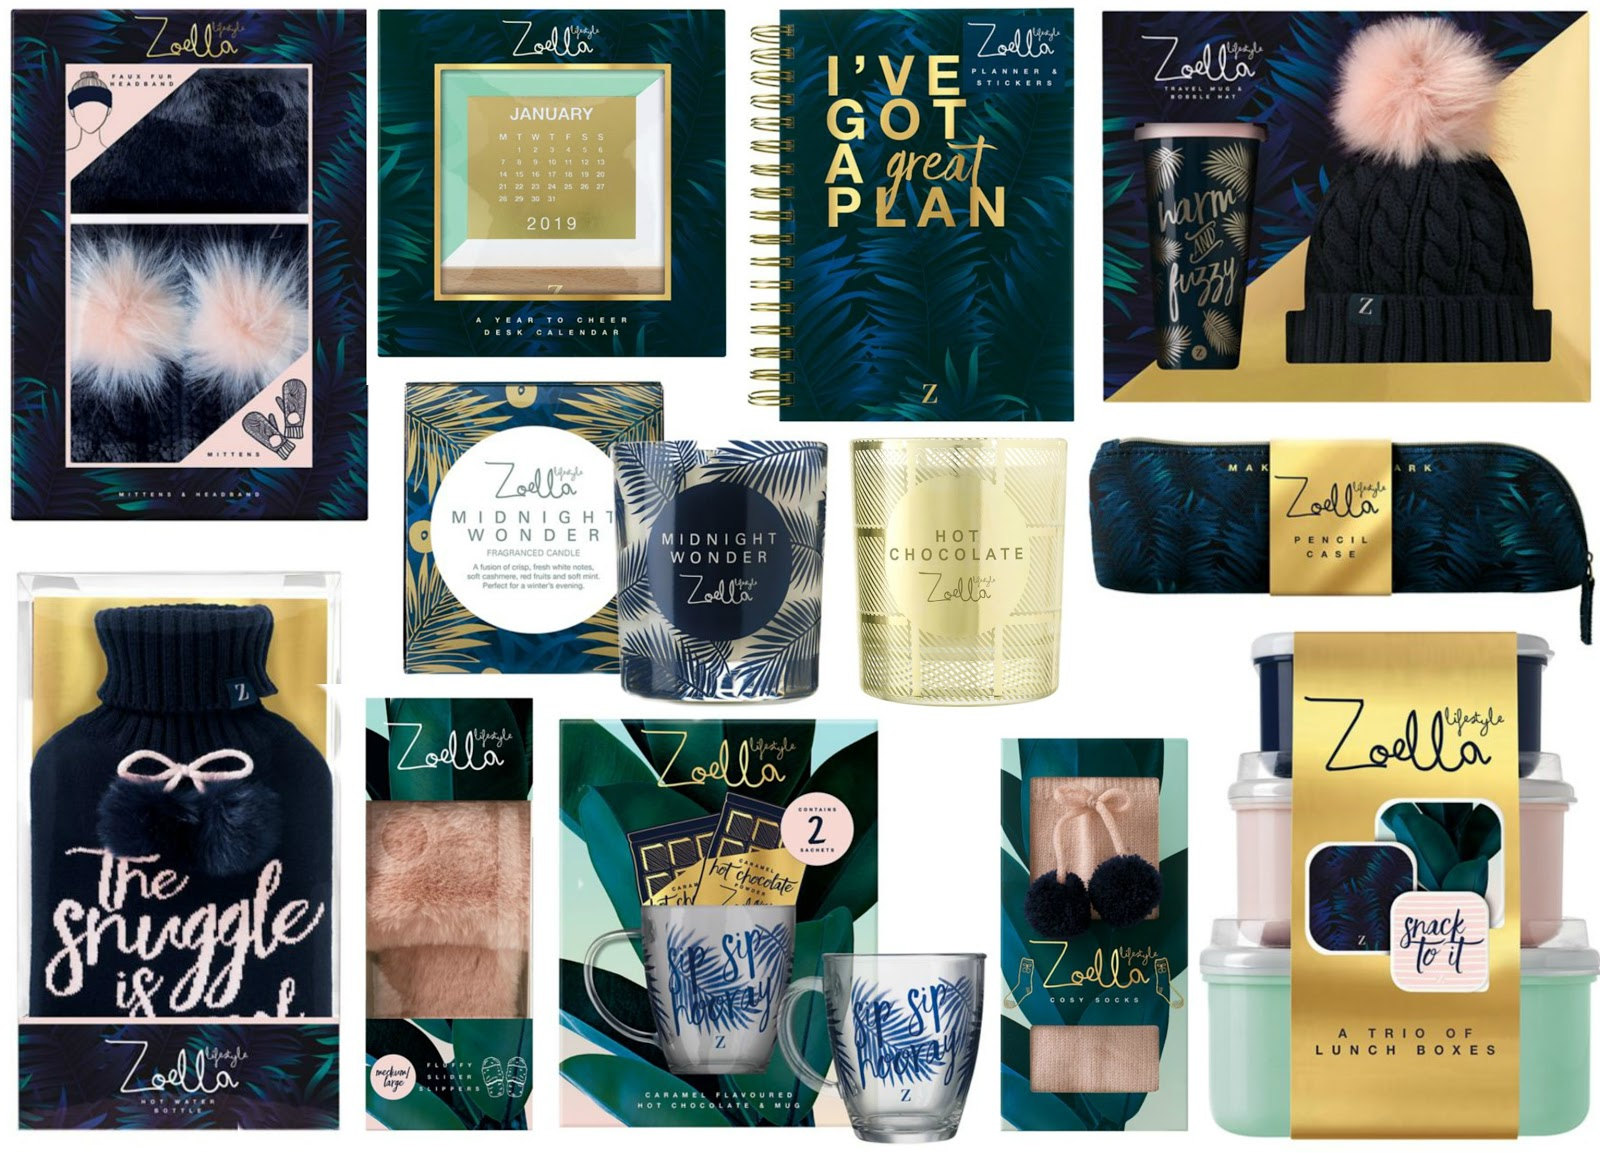 Zoella Christmas 2019 HaySparkle: Zoella Lifestyle Christmas Collection Revealed!